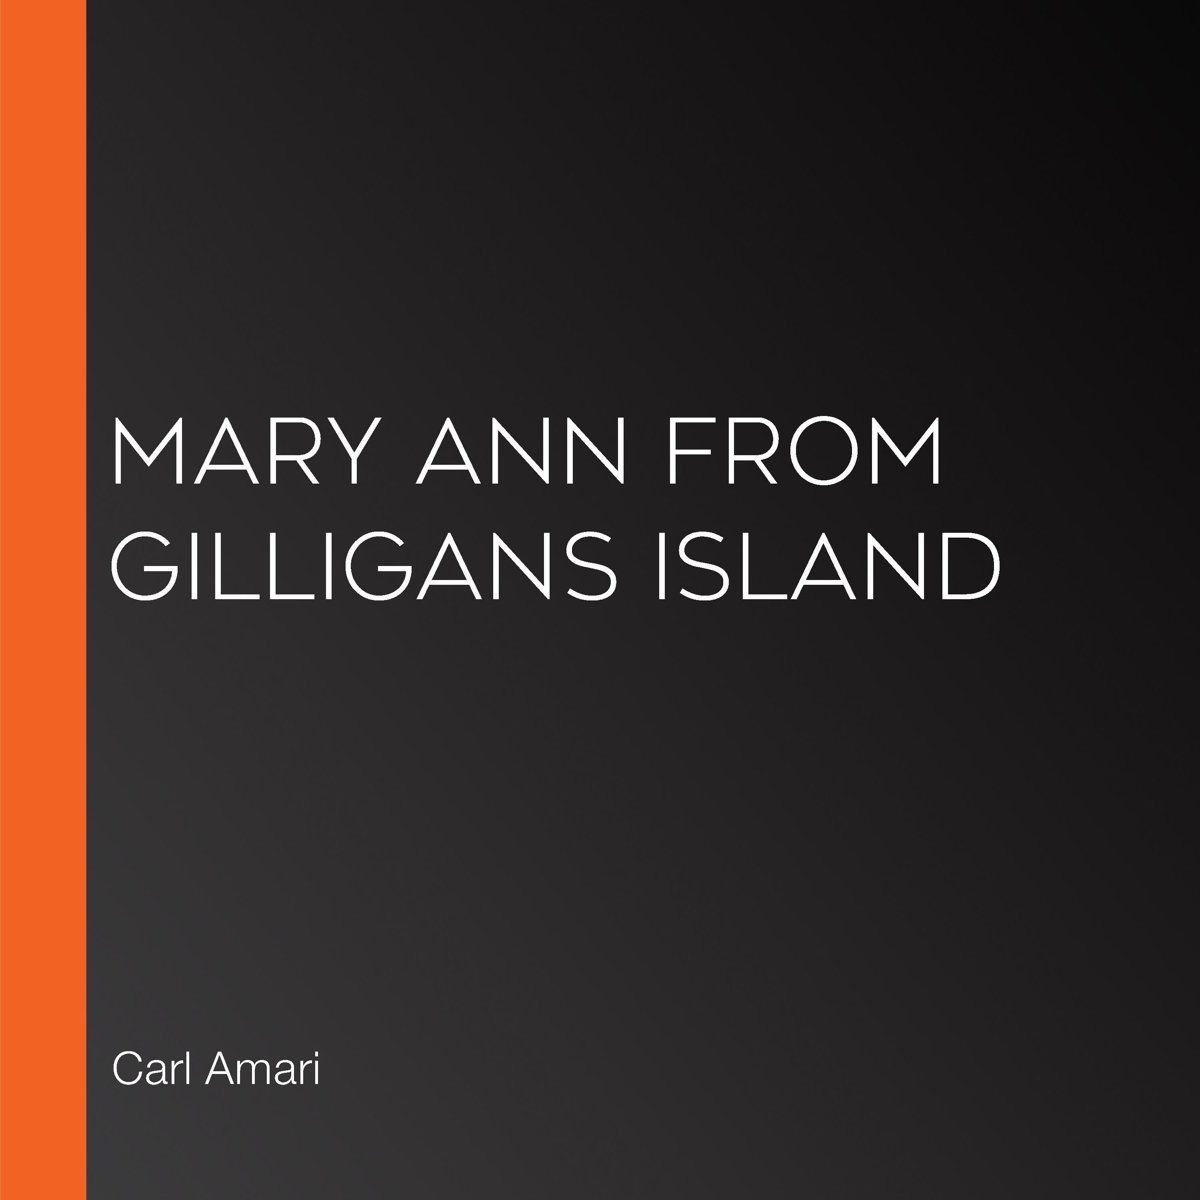 Mary Ann from Gilligans Island